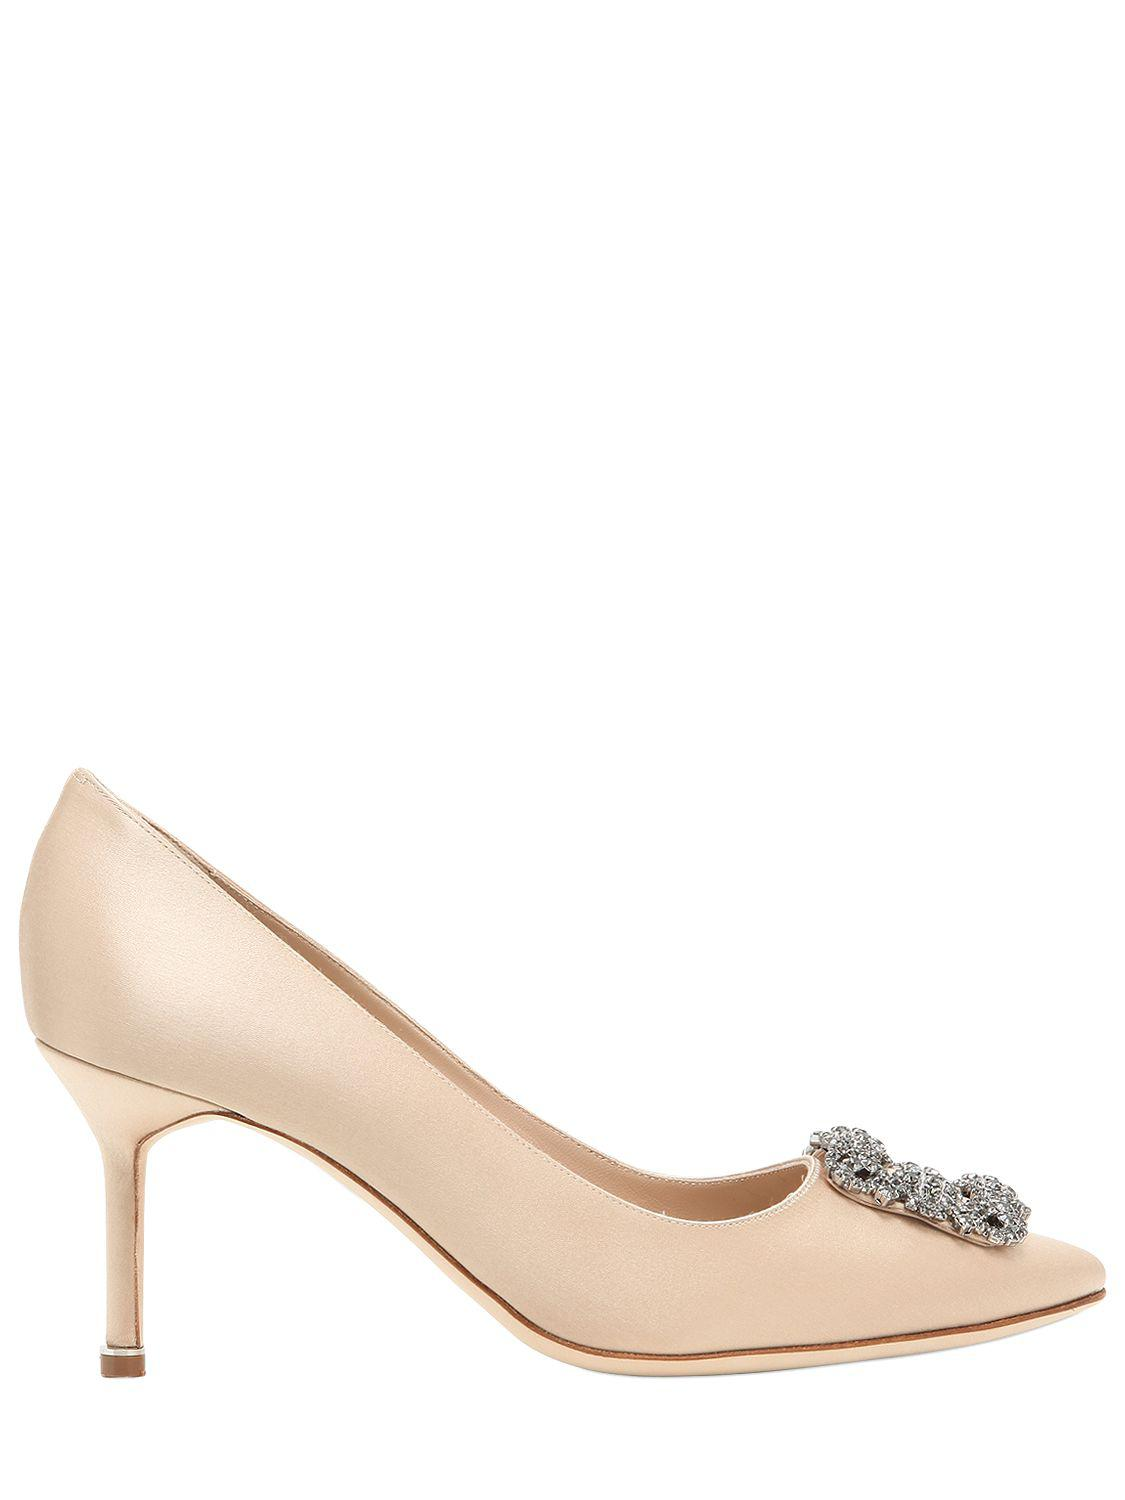 Manolo Blahnik. Women's 70mm Hangisi Swarovski Silk Satin Pumps